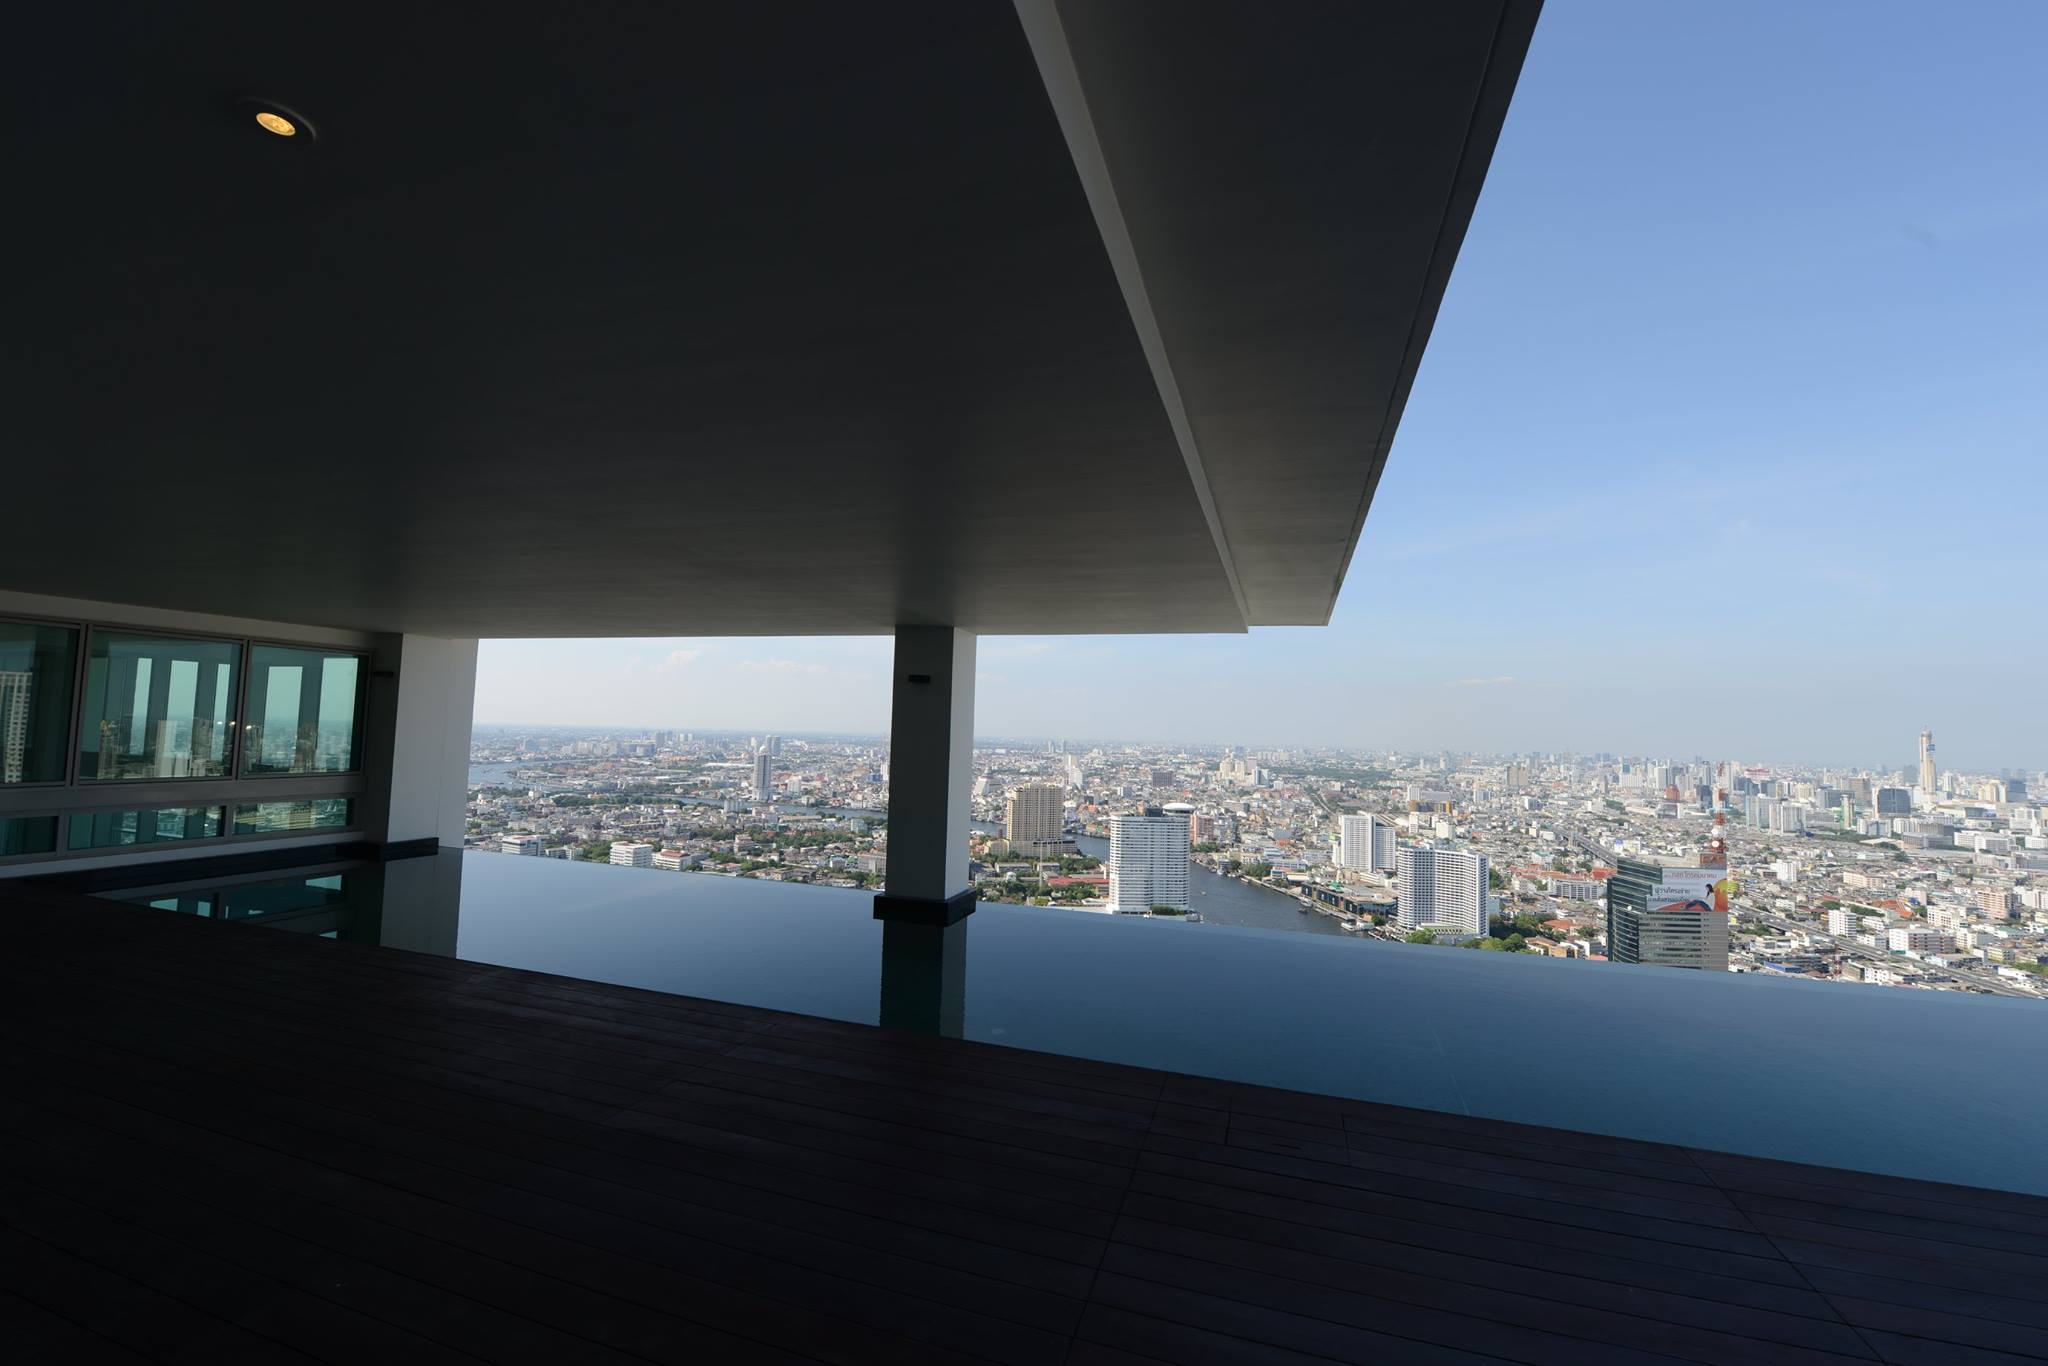 VisionQuest Thailand Property Agency's The River Penthouse 942sq.m spectacular 180 degrees river and city views 31